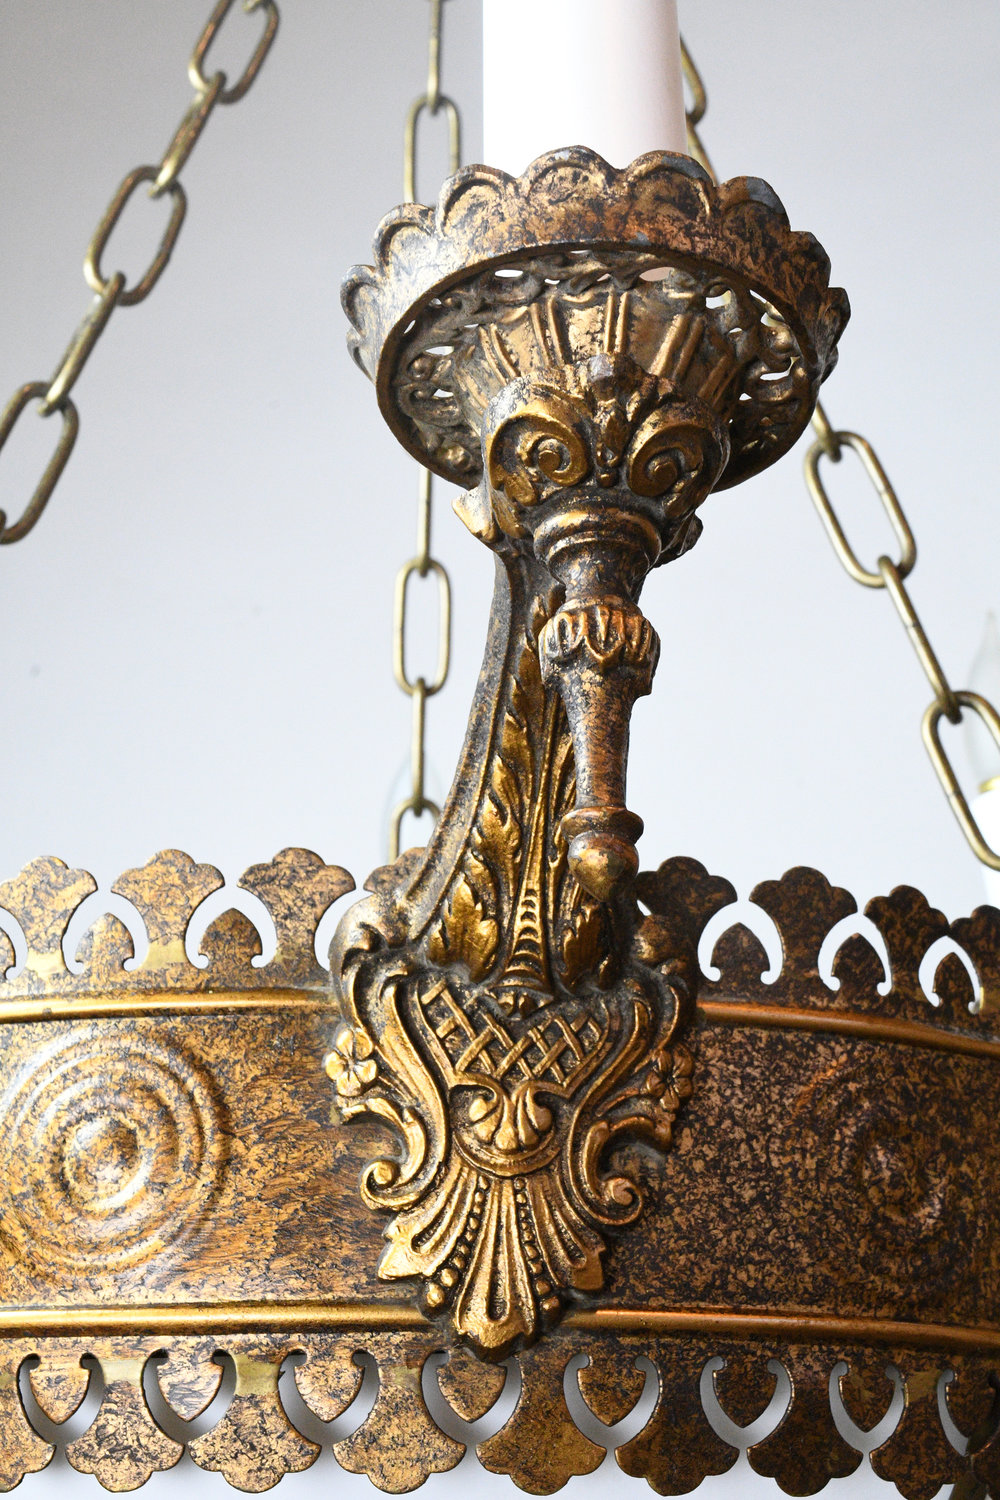 47529-6-candle-tudor-brass-chand-with-bent-glass-detail-10.jpg